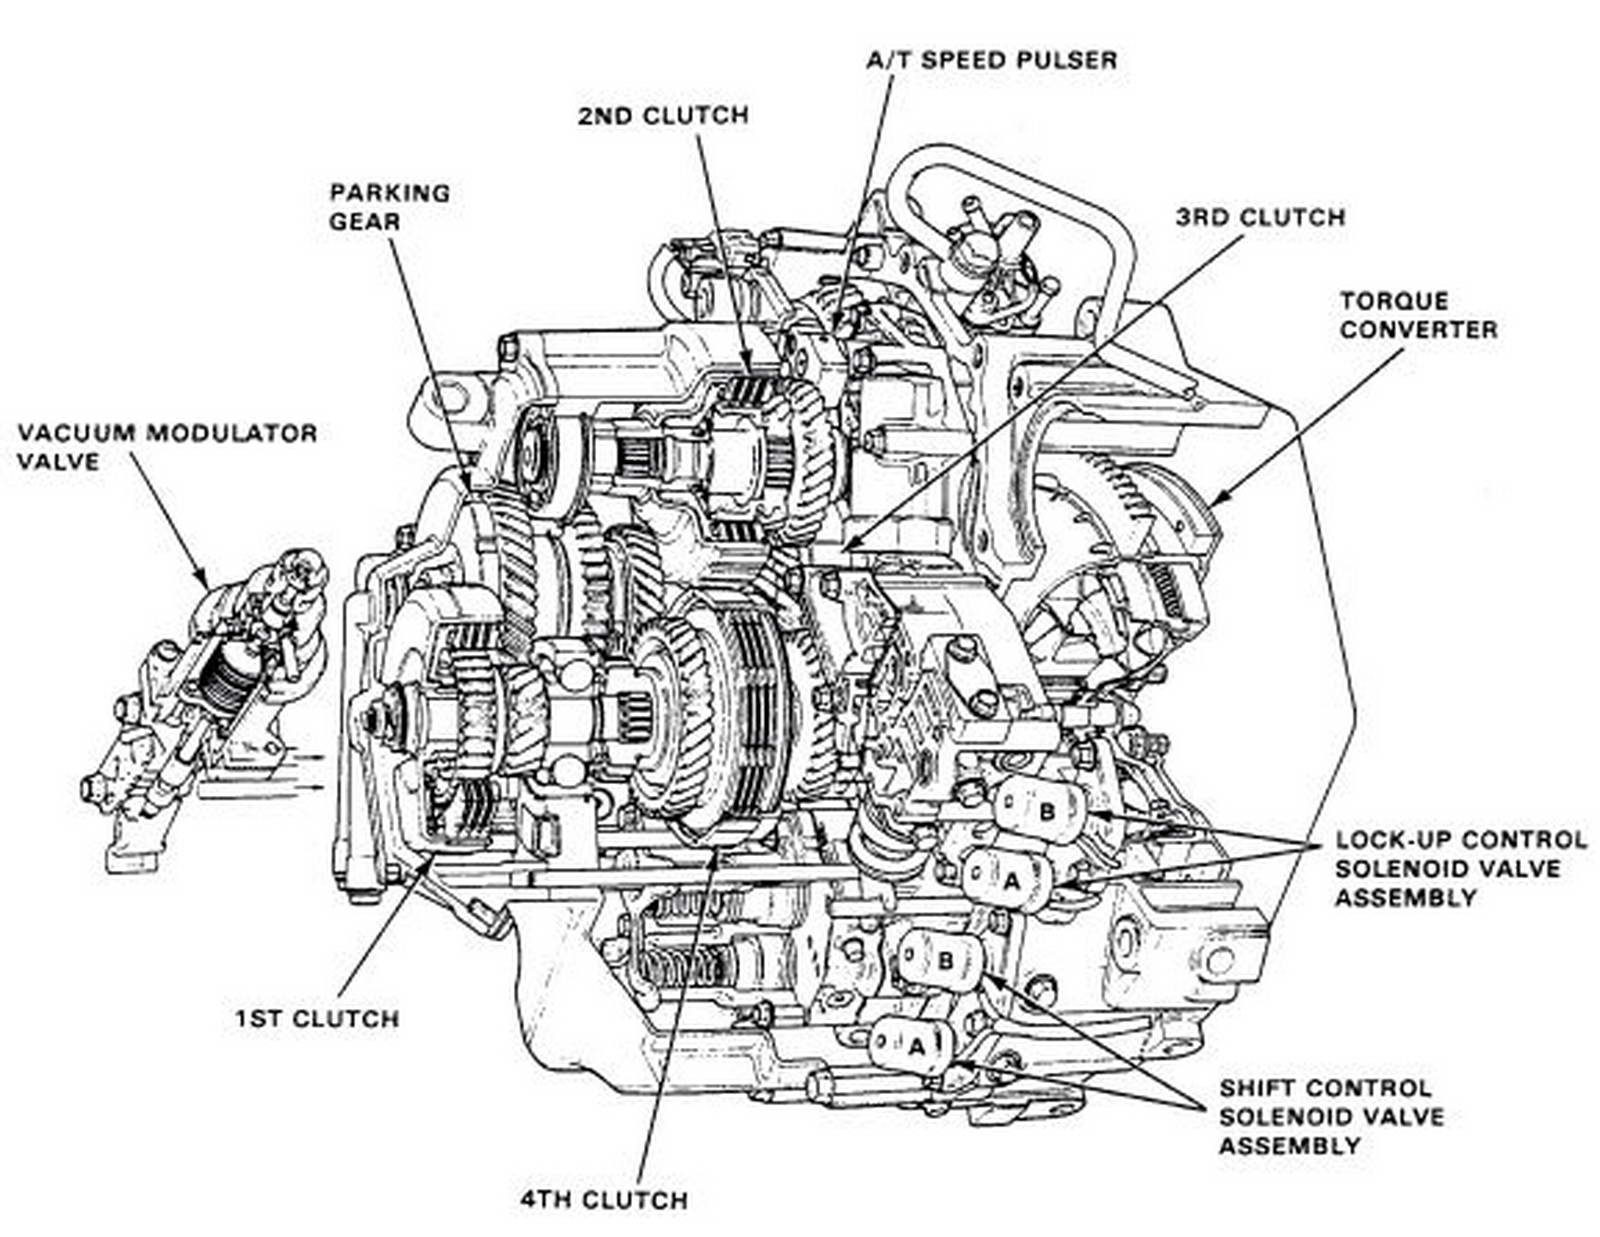 ACURA INTEGRA 1990 transmission